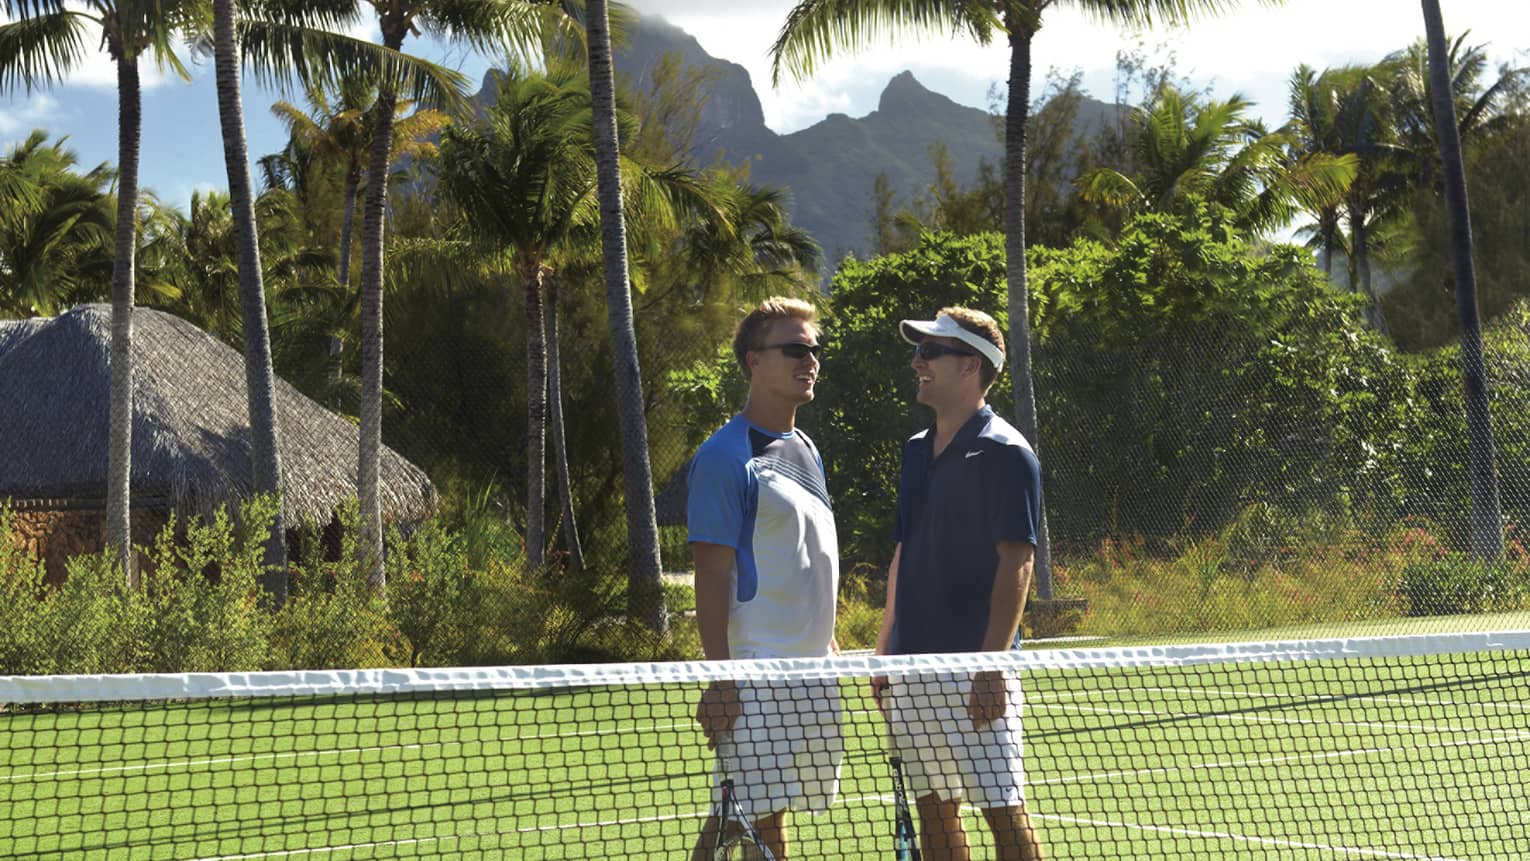 Two men talking on grass tennis court, palm trees in the background